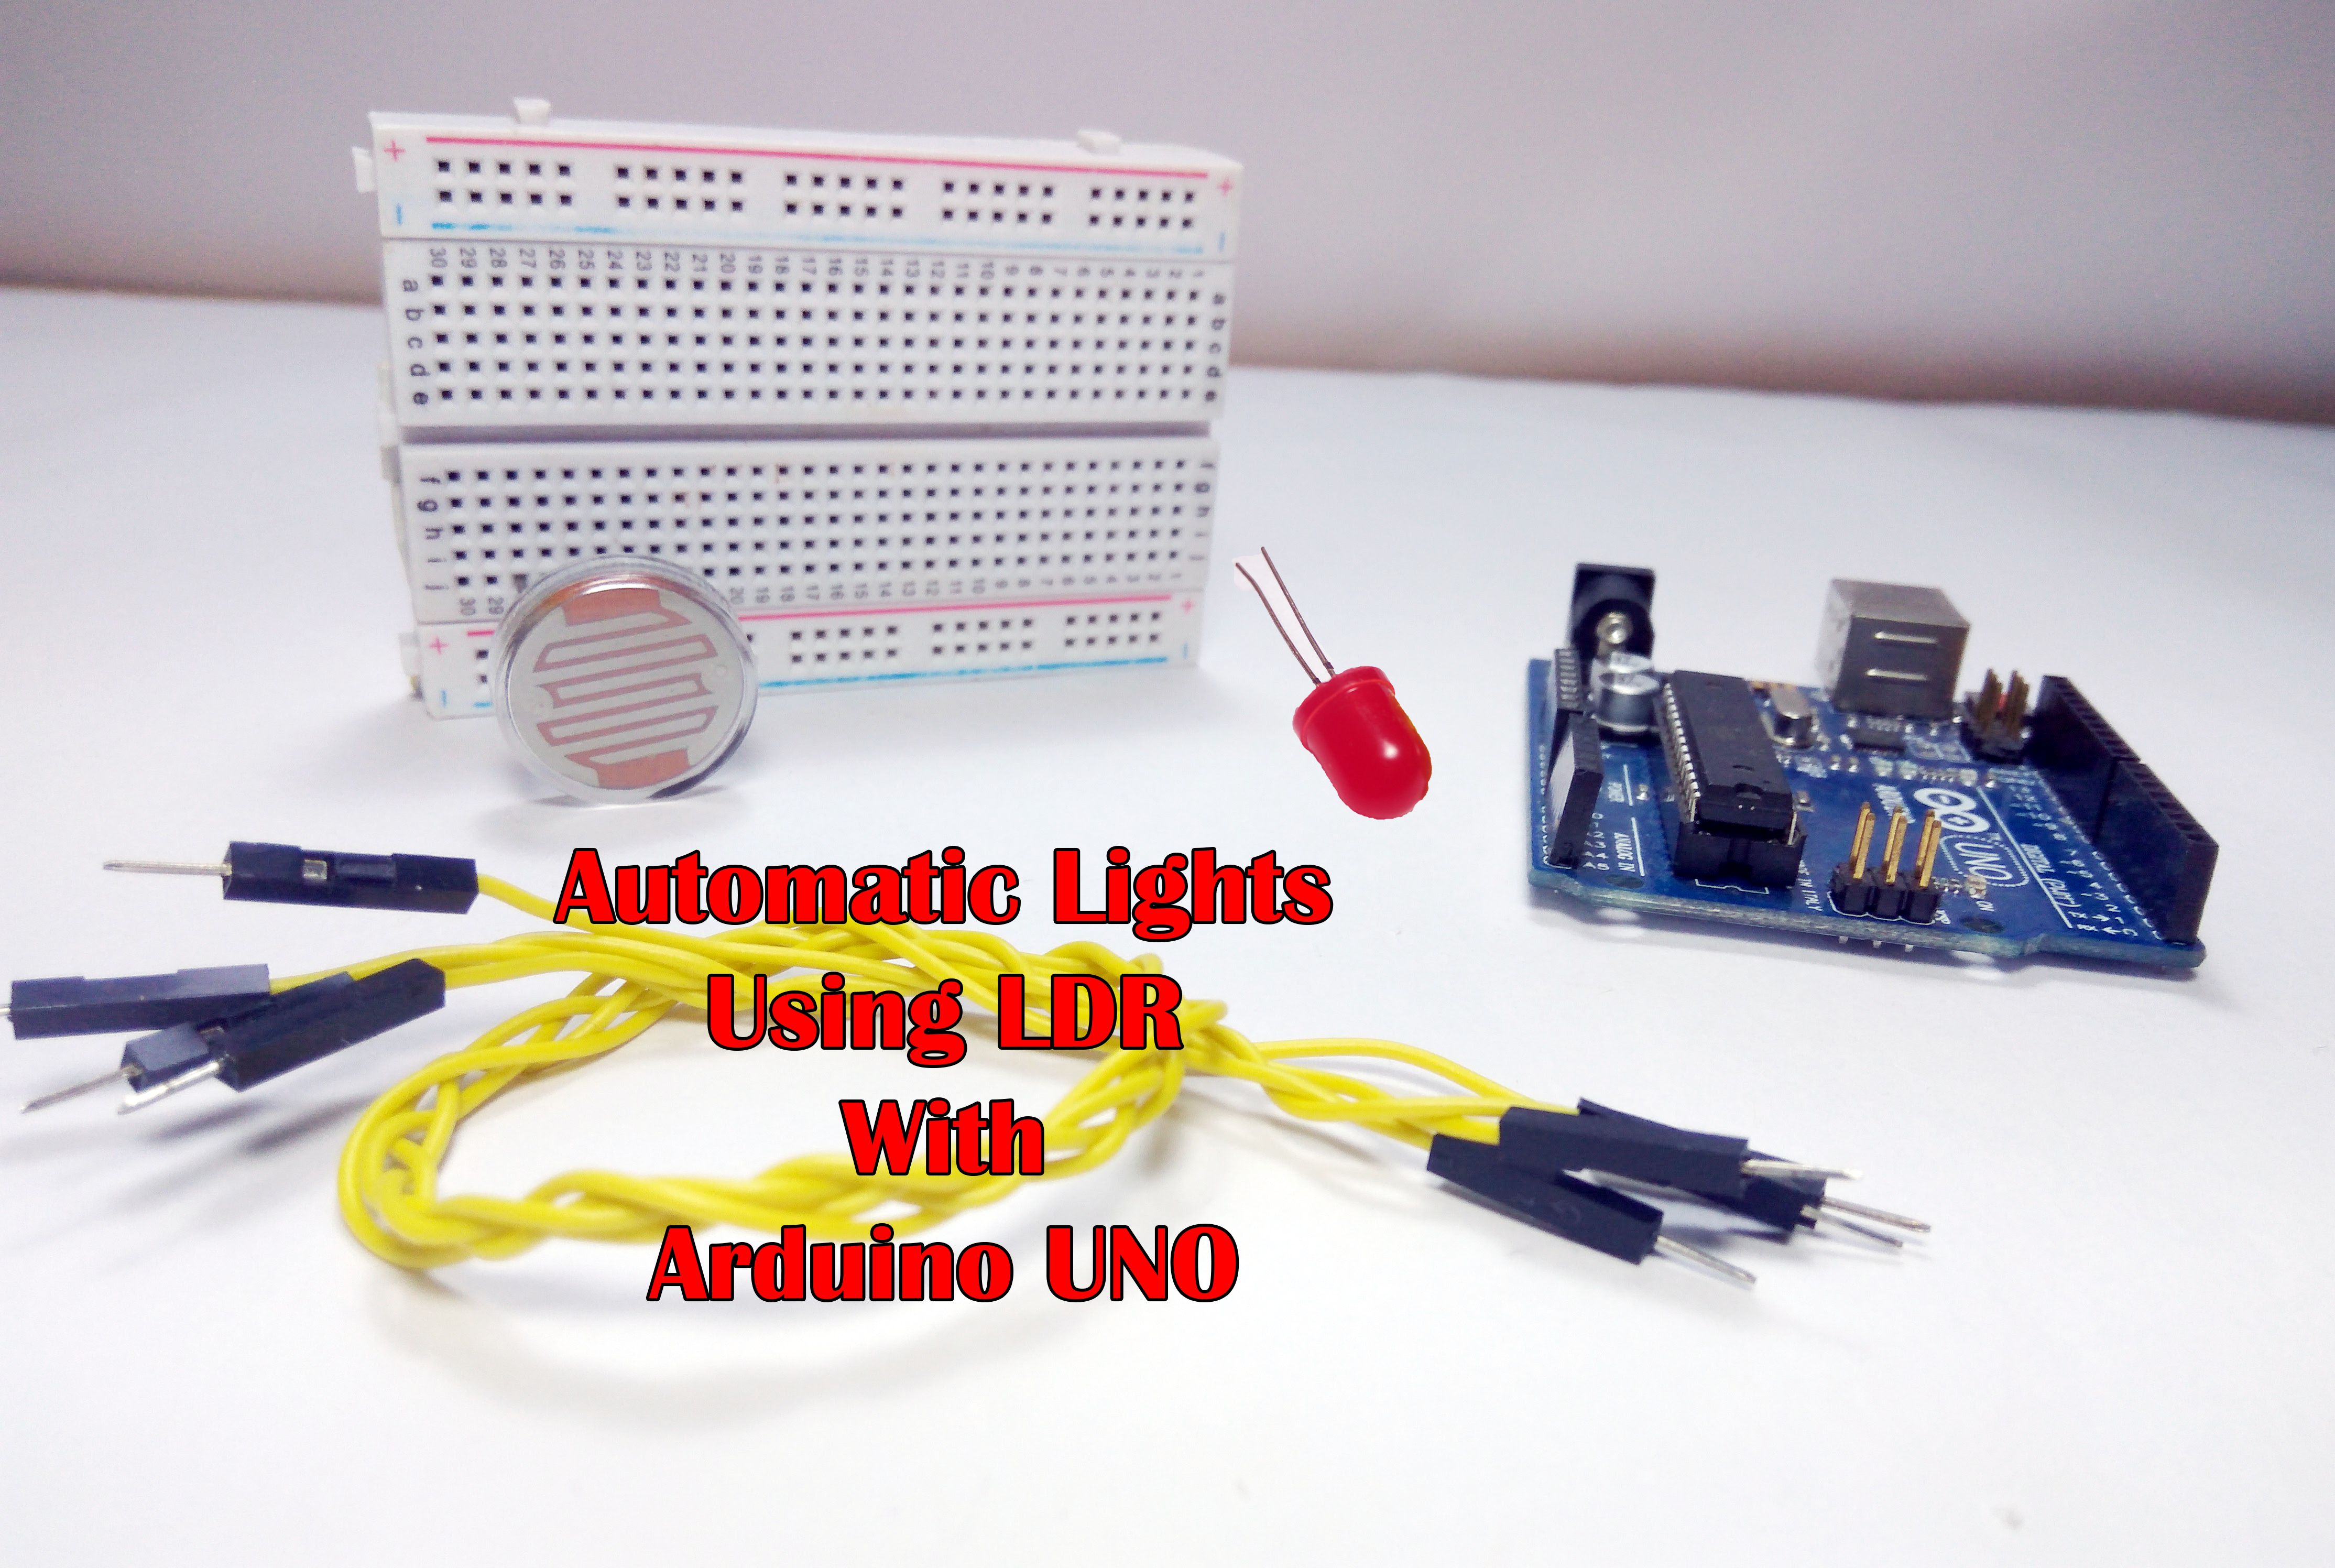 Picture of Automatic Lights Using LDR (Brightness Control)